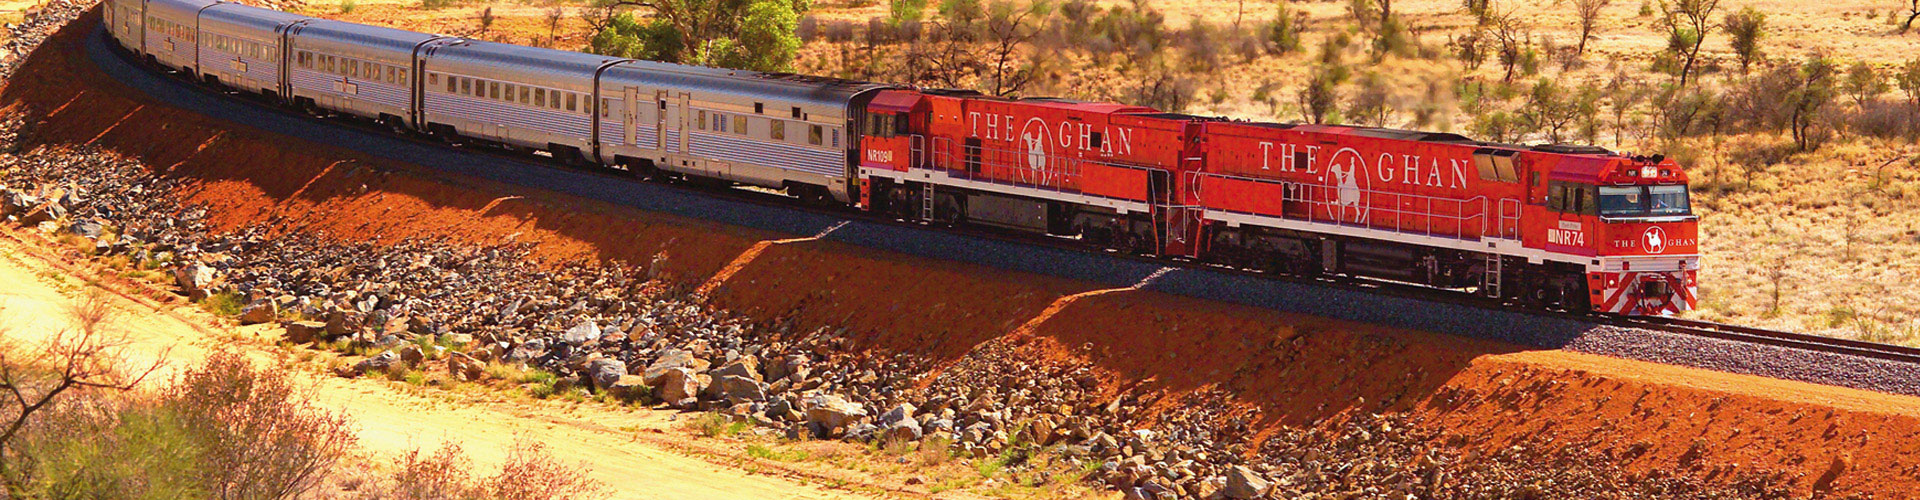 Top End Complete with The Ghan